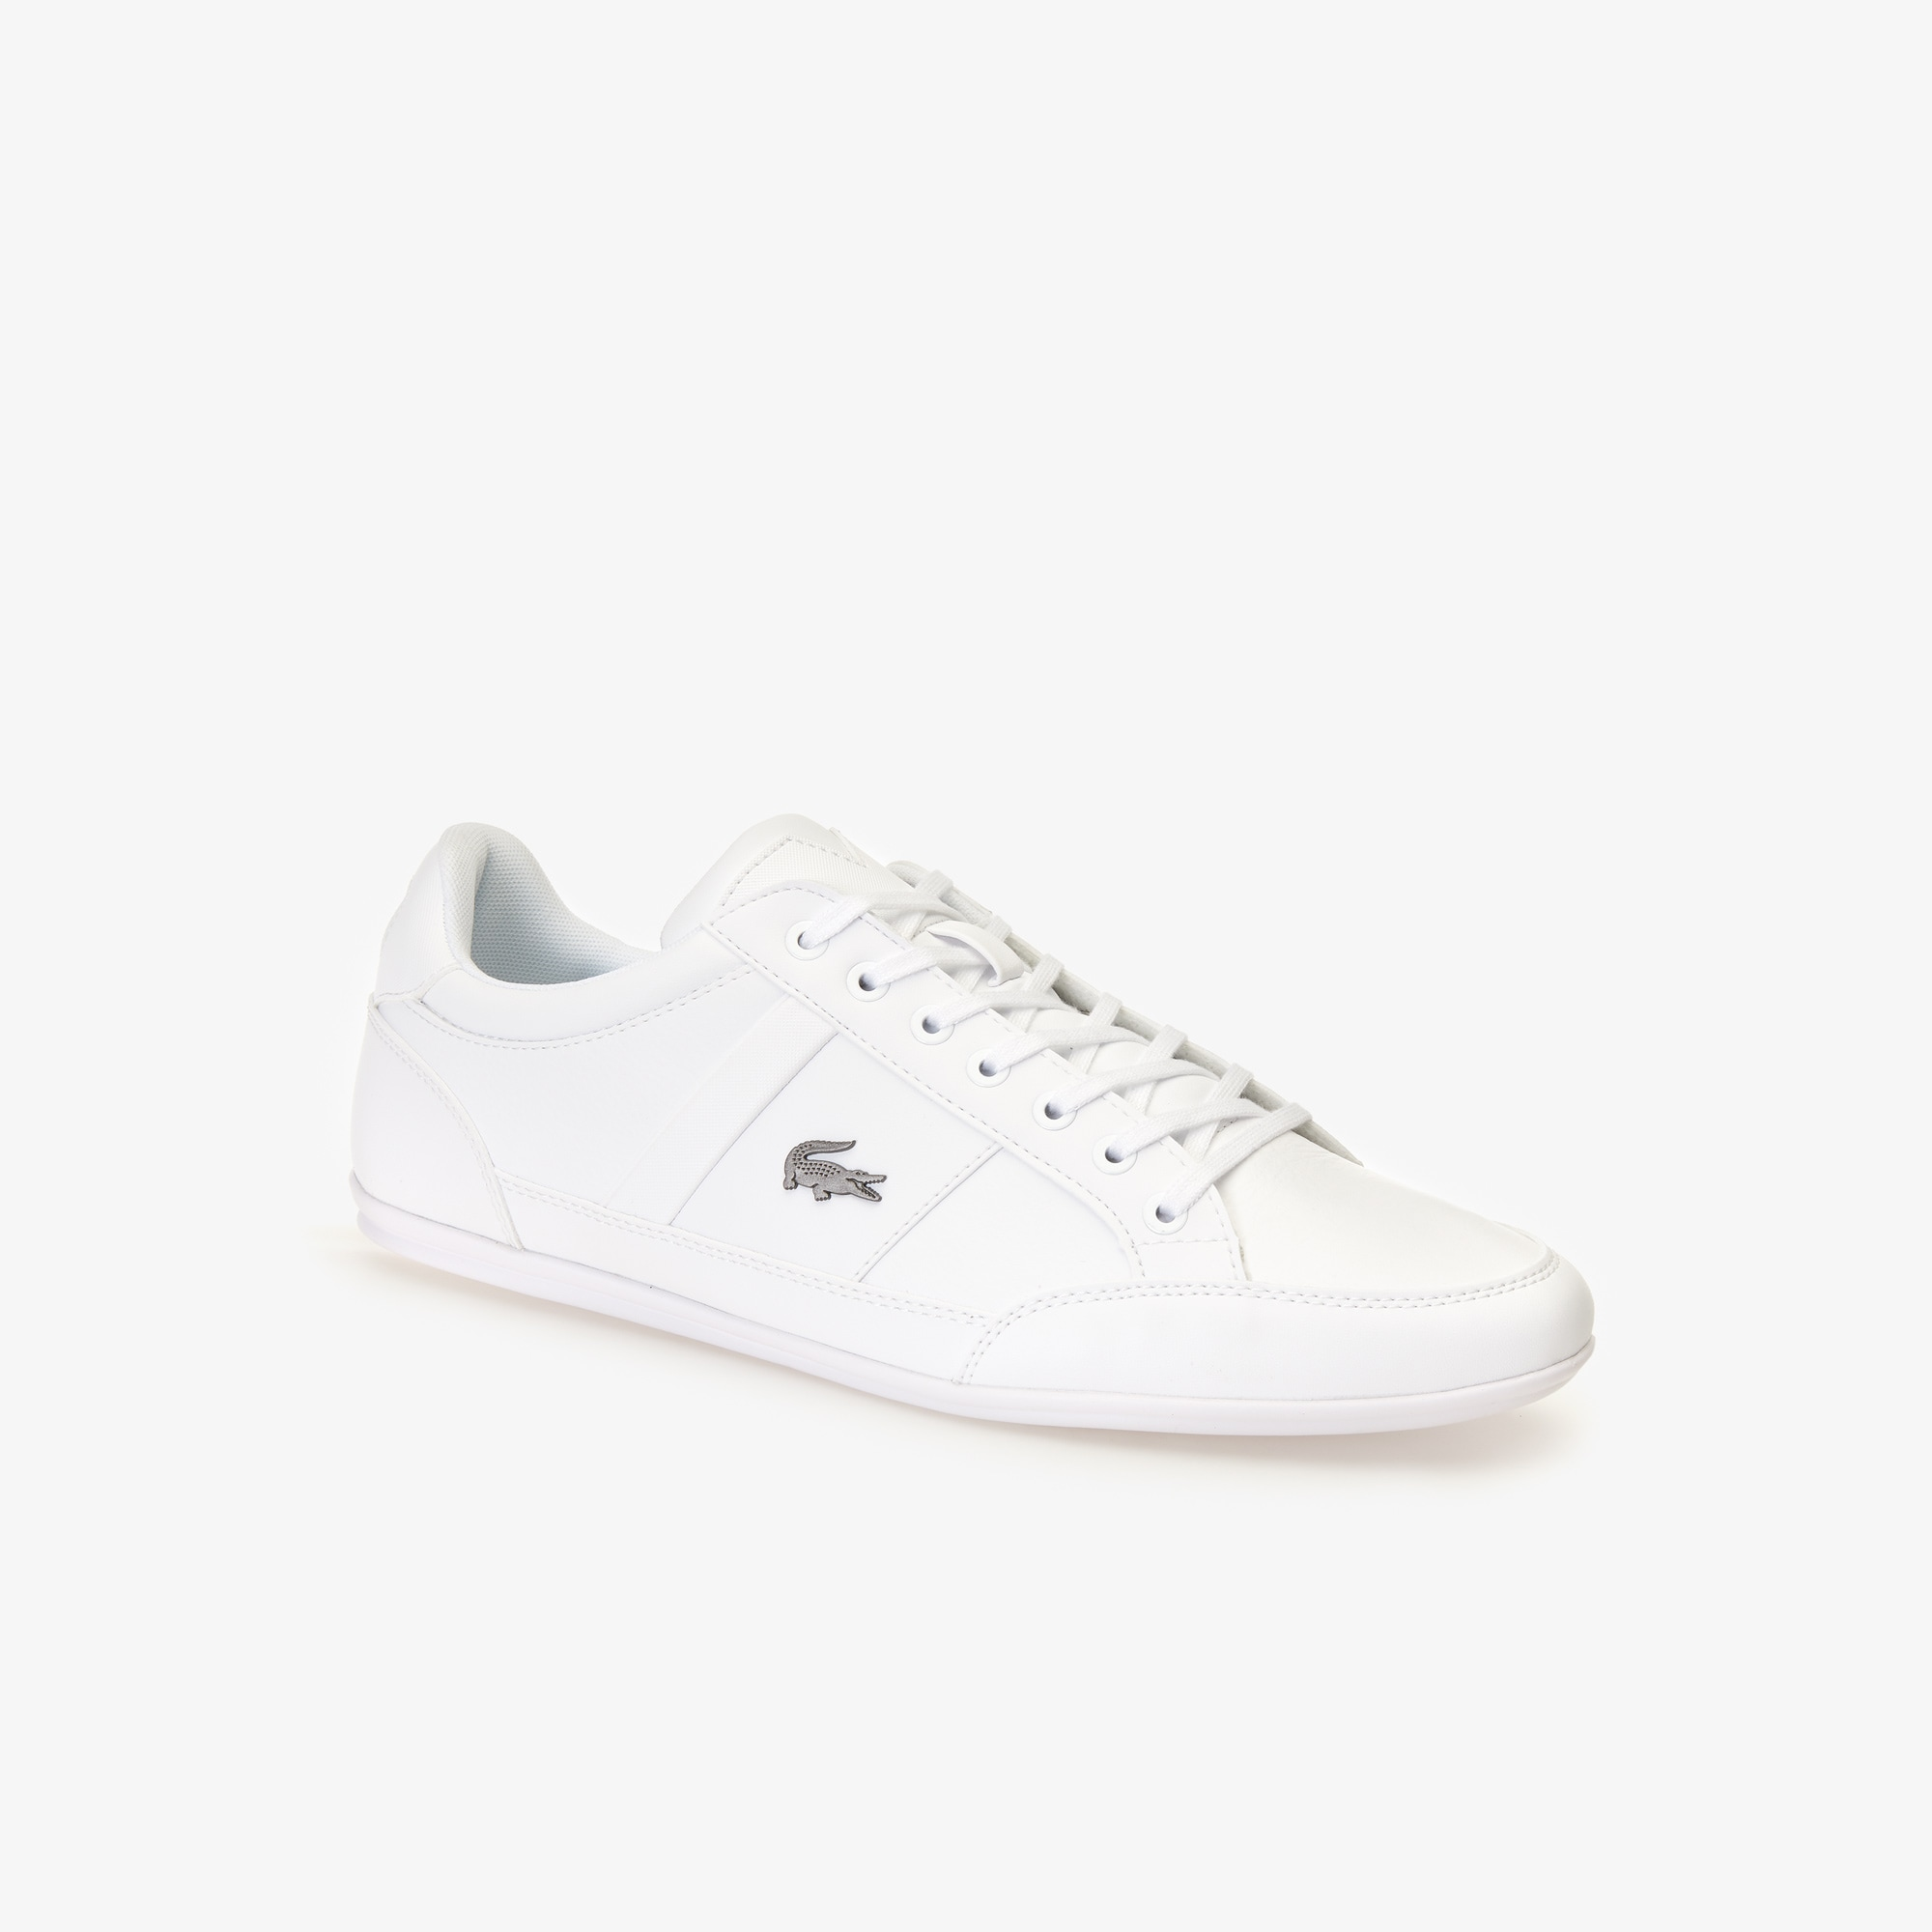 a8b1425df0 Sneakers homme, baskets et chaussures homme | LACOSTE